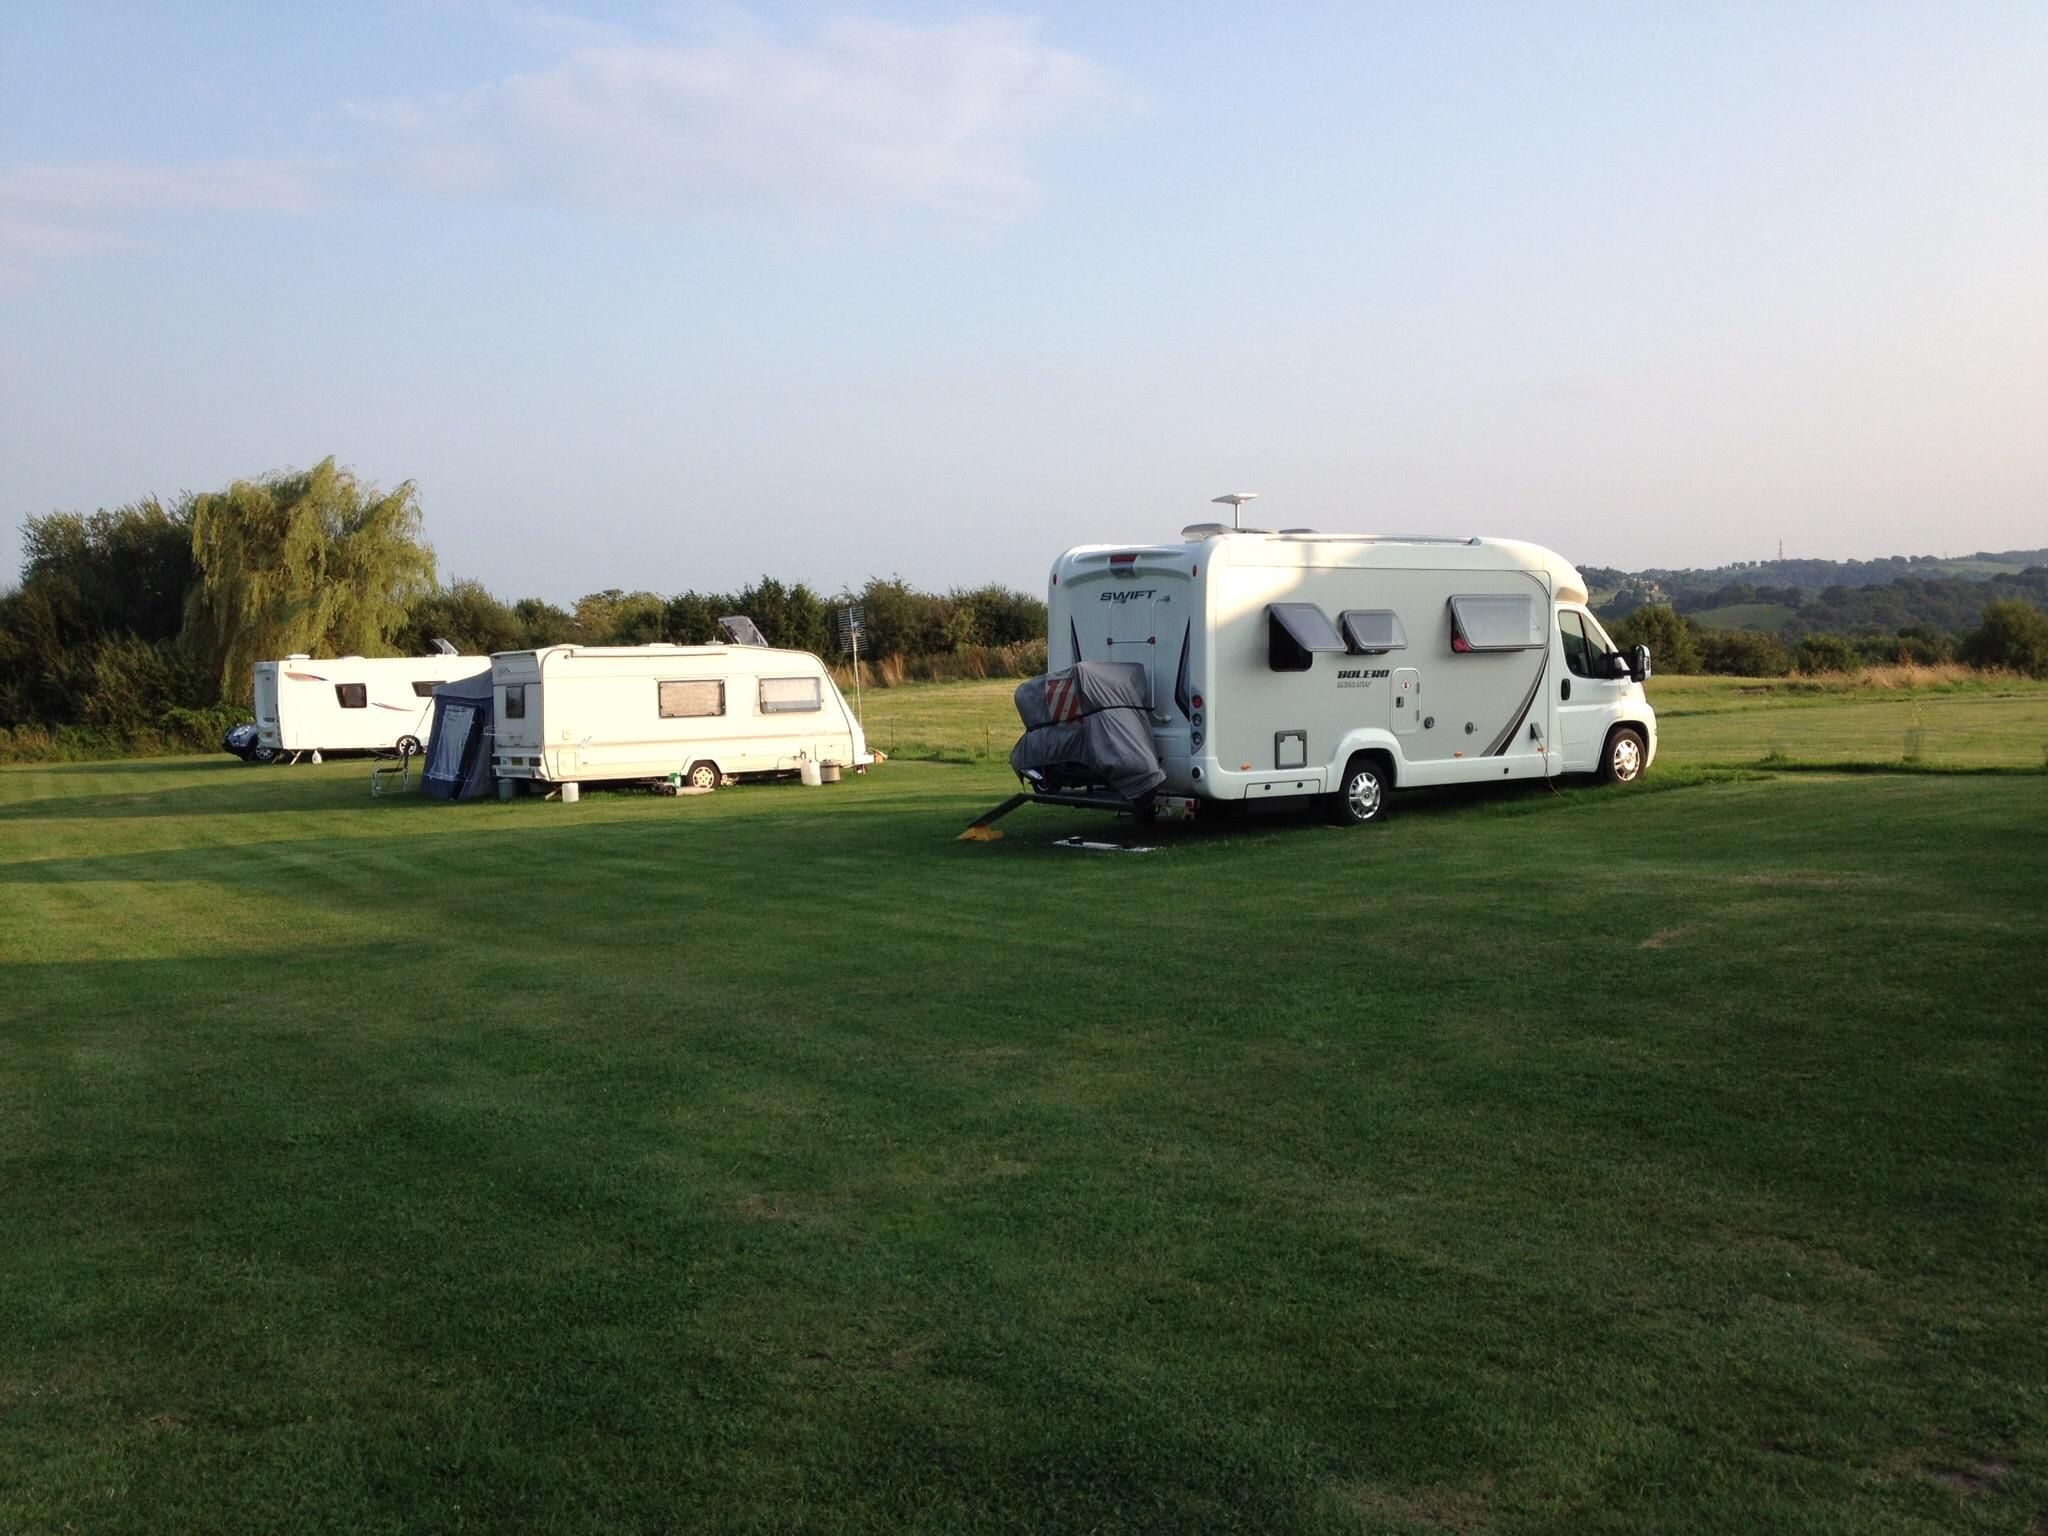 New Farm Caravan Park CL